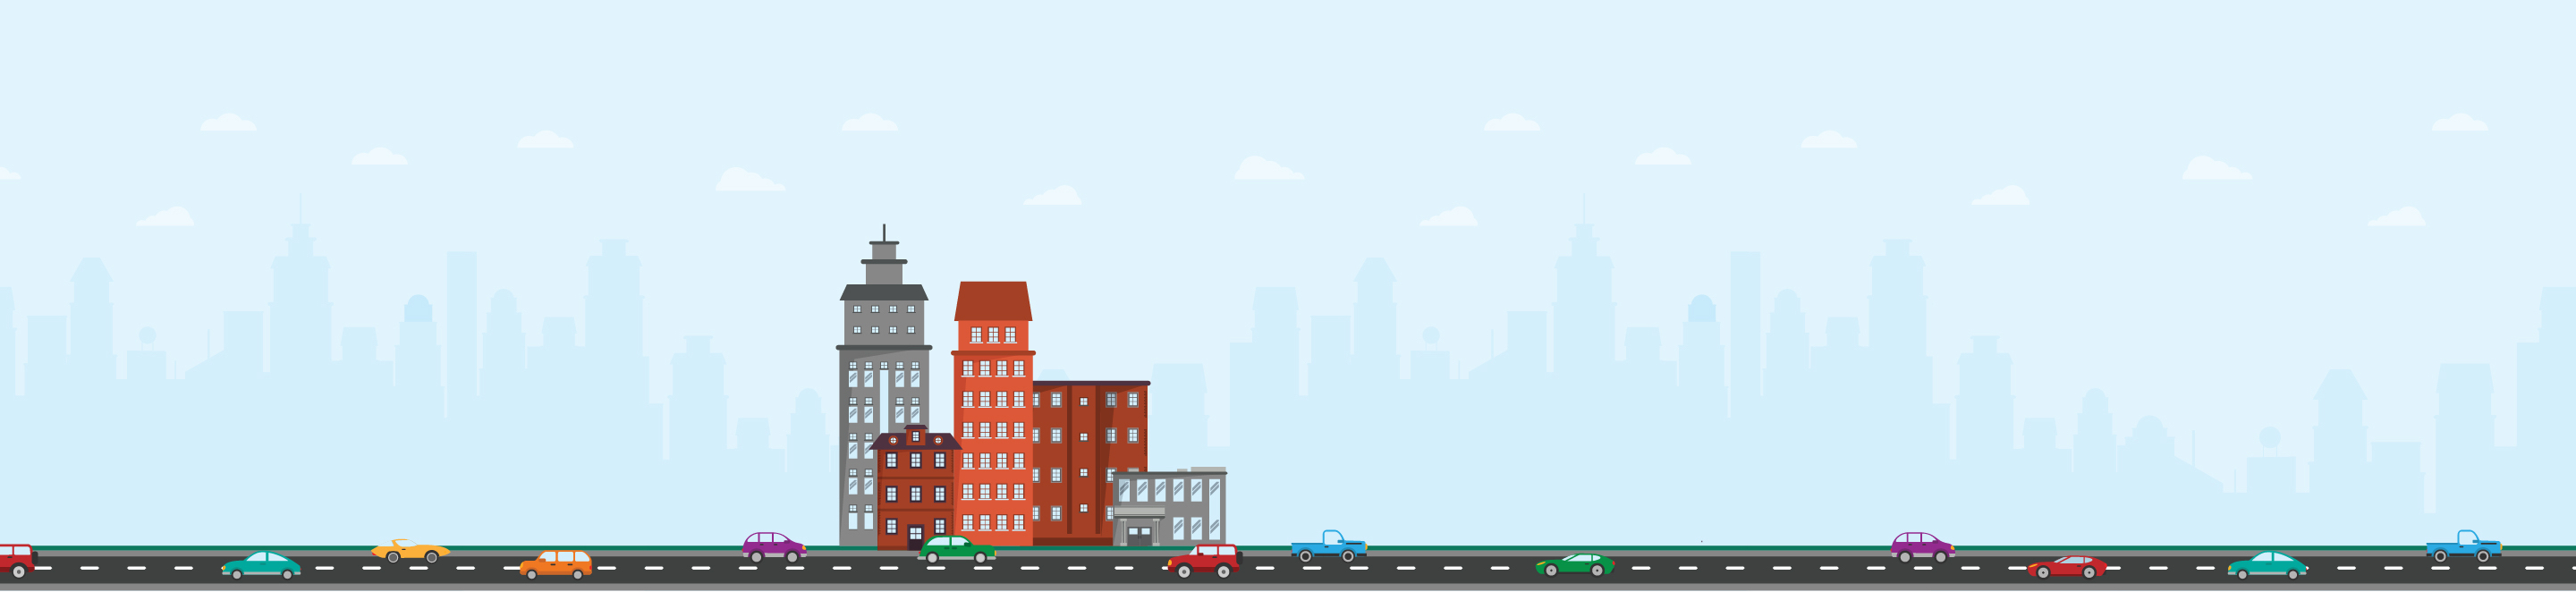 Illustration Of Cars Driving In City